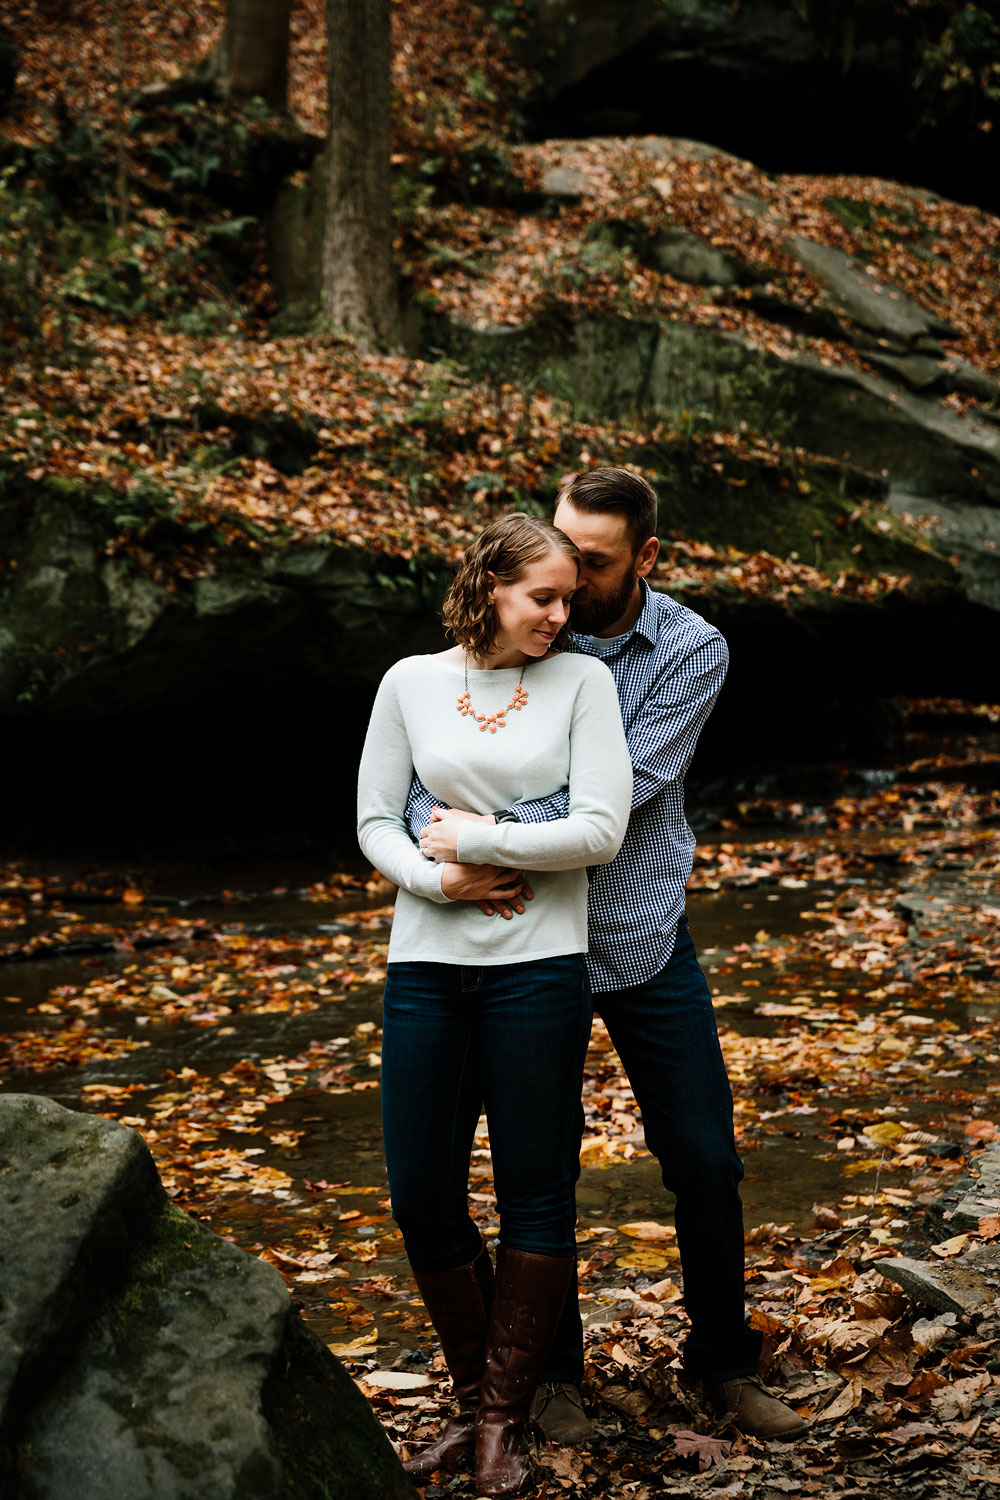 cuyahoga-valley-national-park-engagement-photography-peninsula-ohio-12.jpg